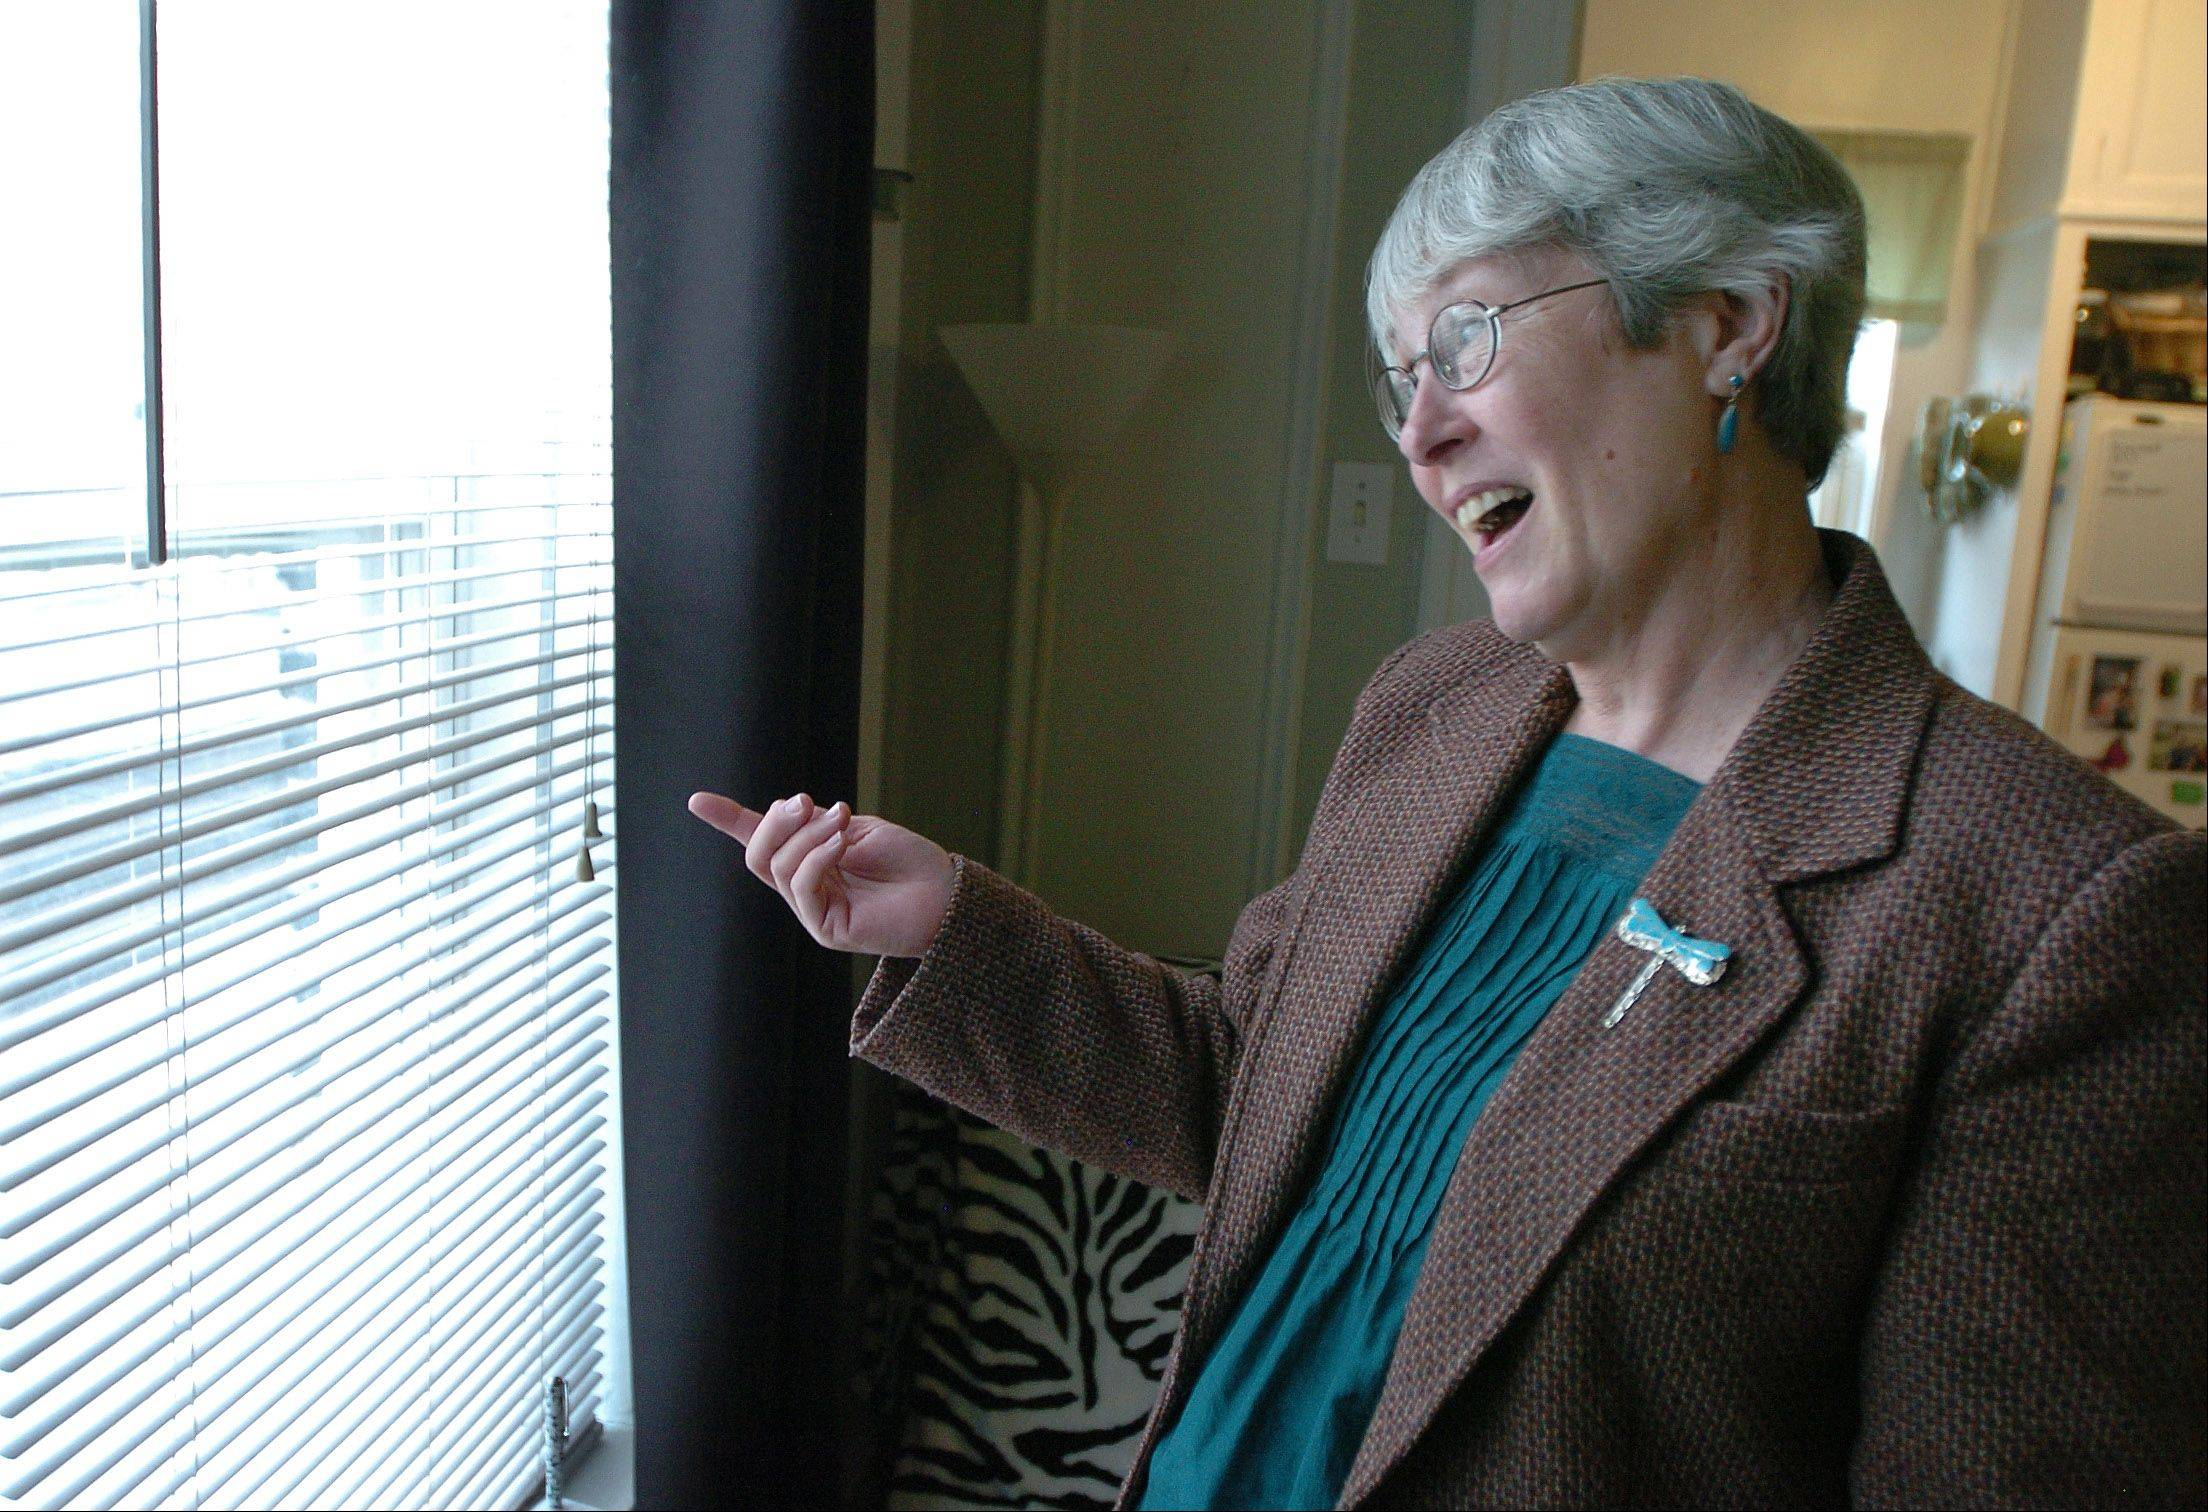 Stephanie Brown, living in a supportive housing apartment in Evanston, looks outside her window.